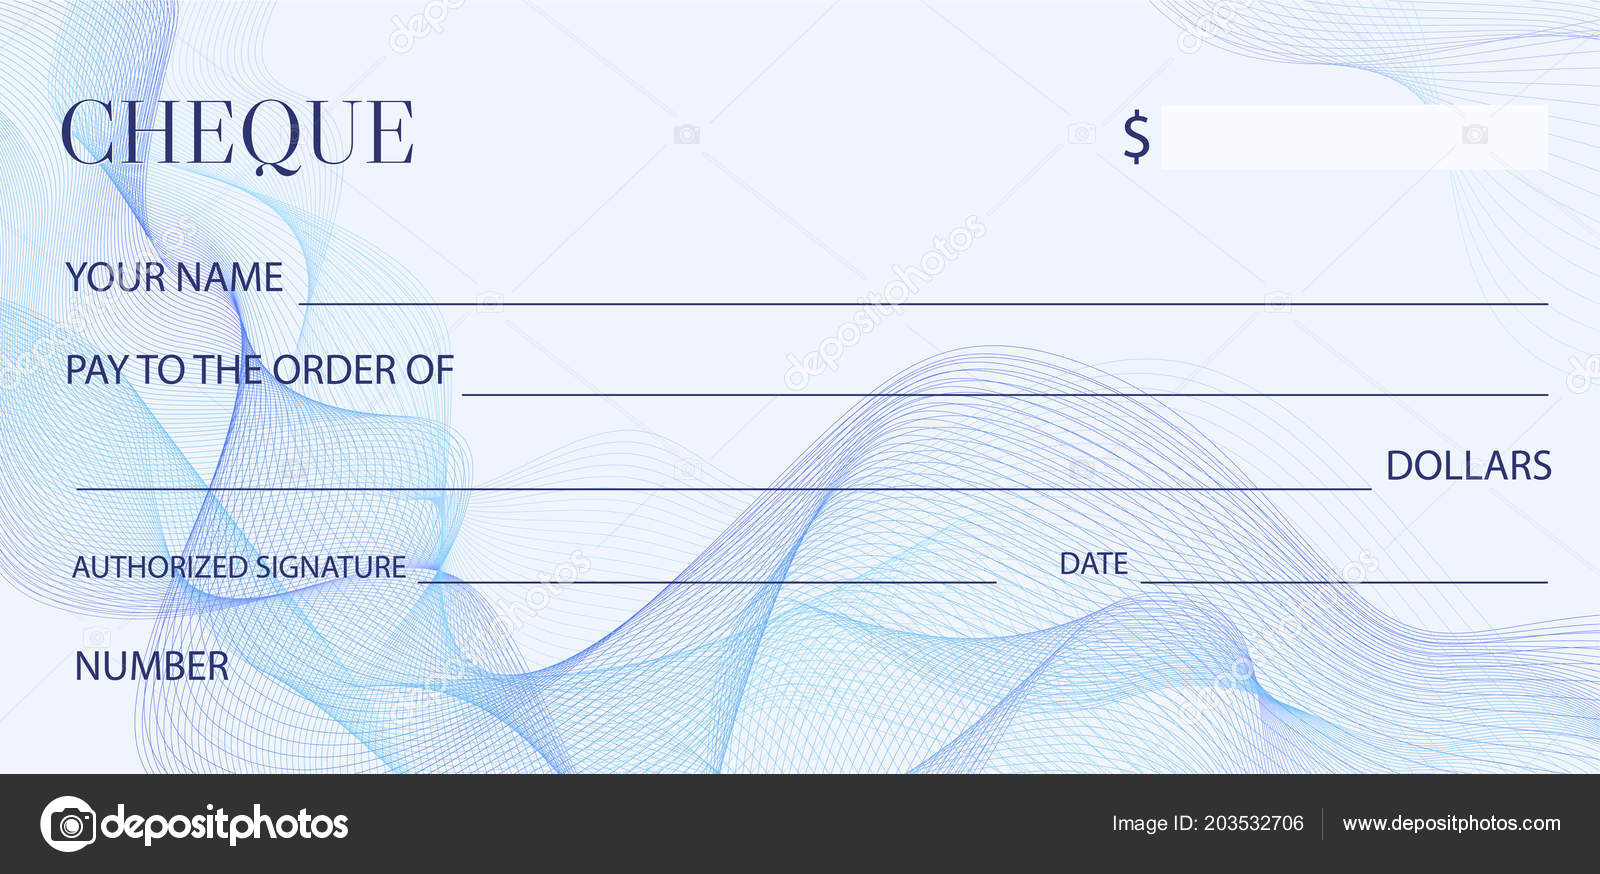 cheque check template chequebook template blank bank